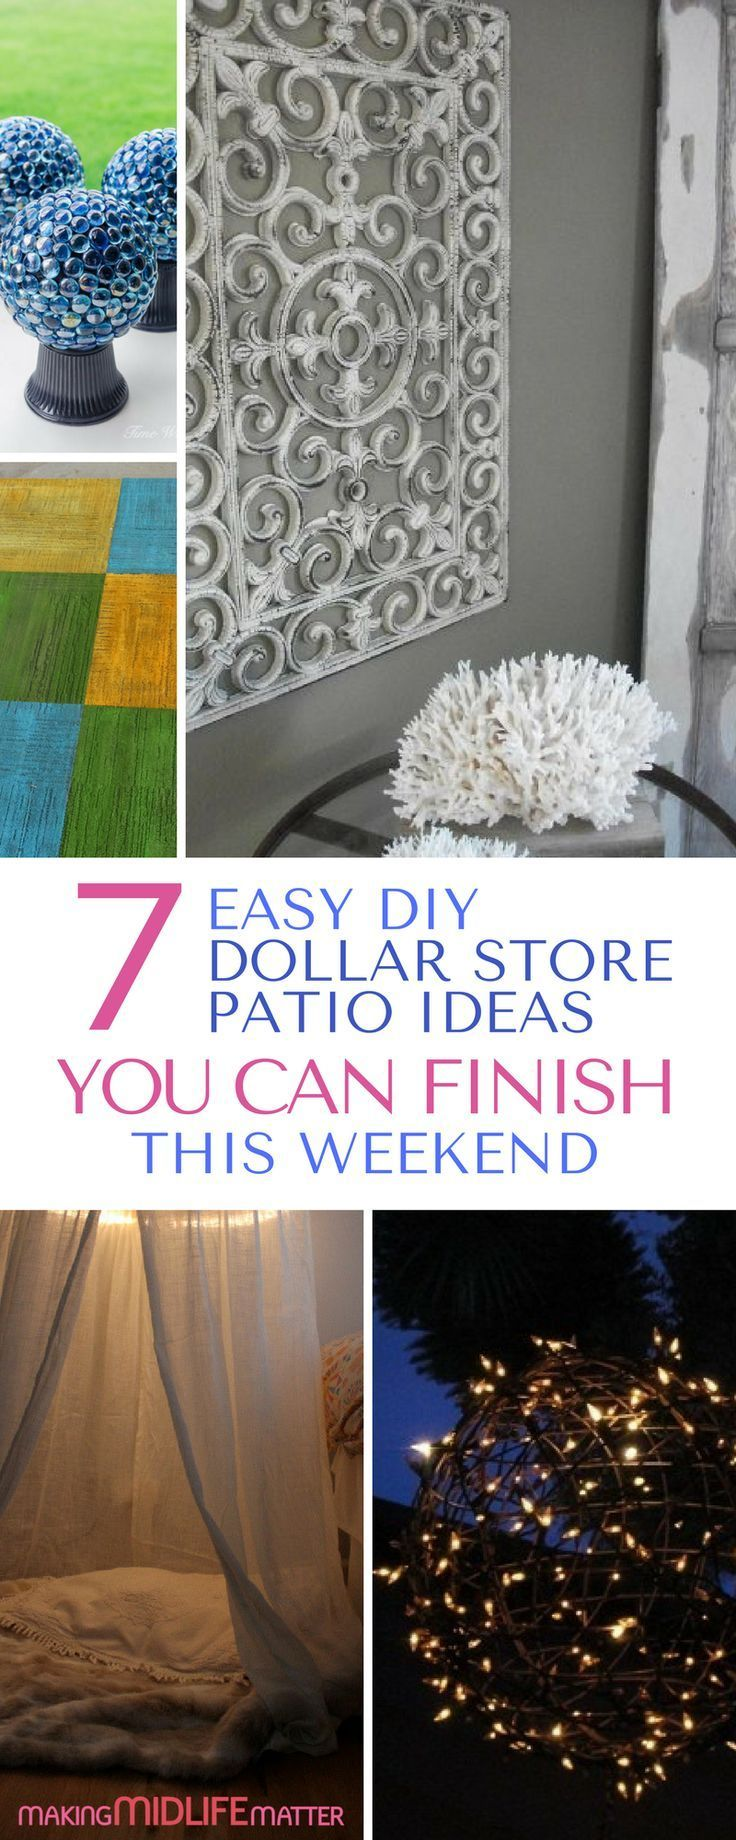 These 7 dollar store patio ideas will